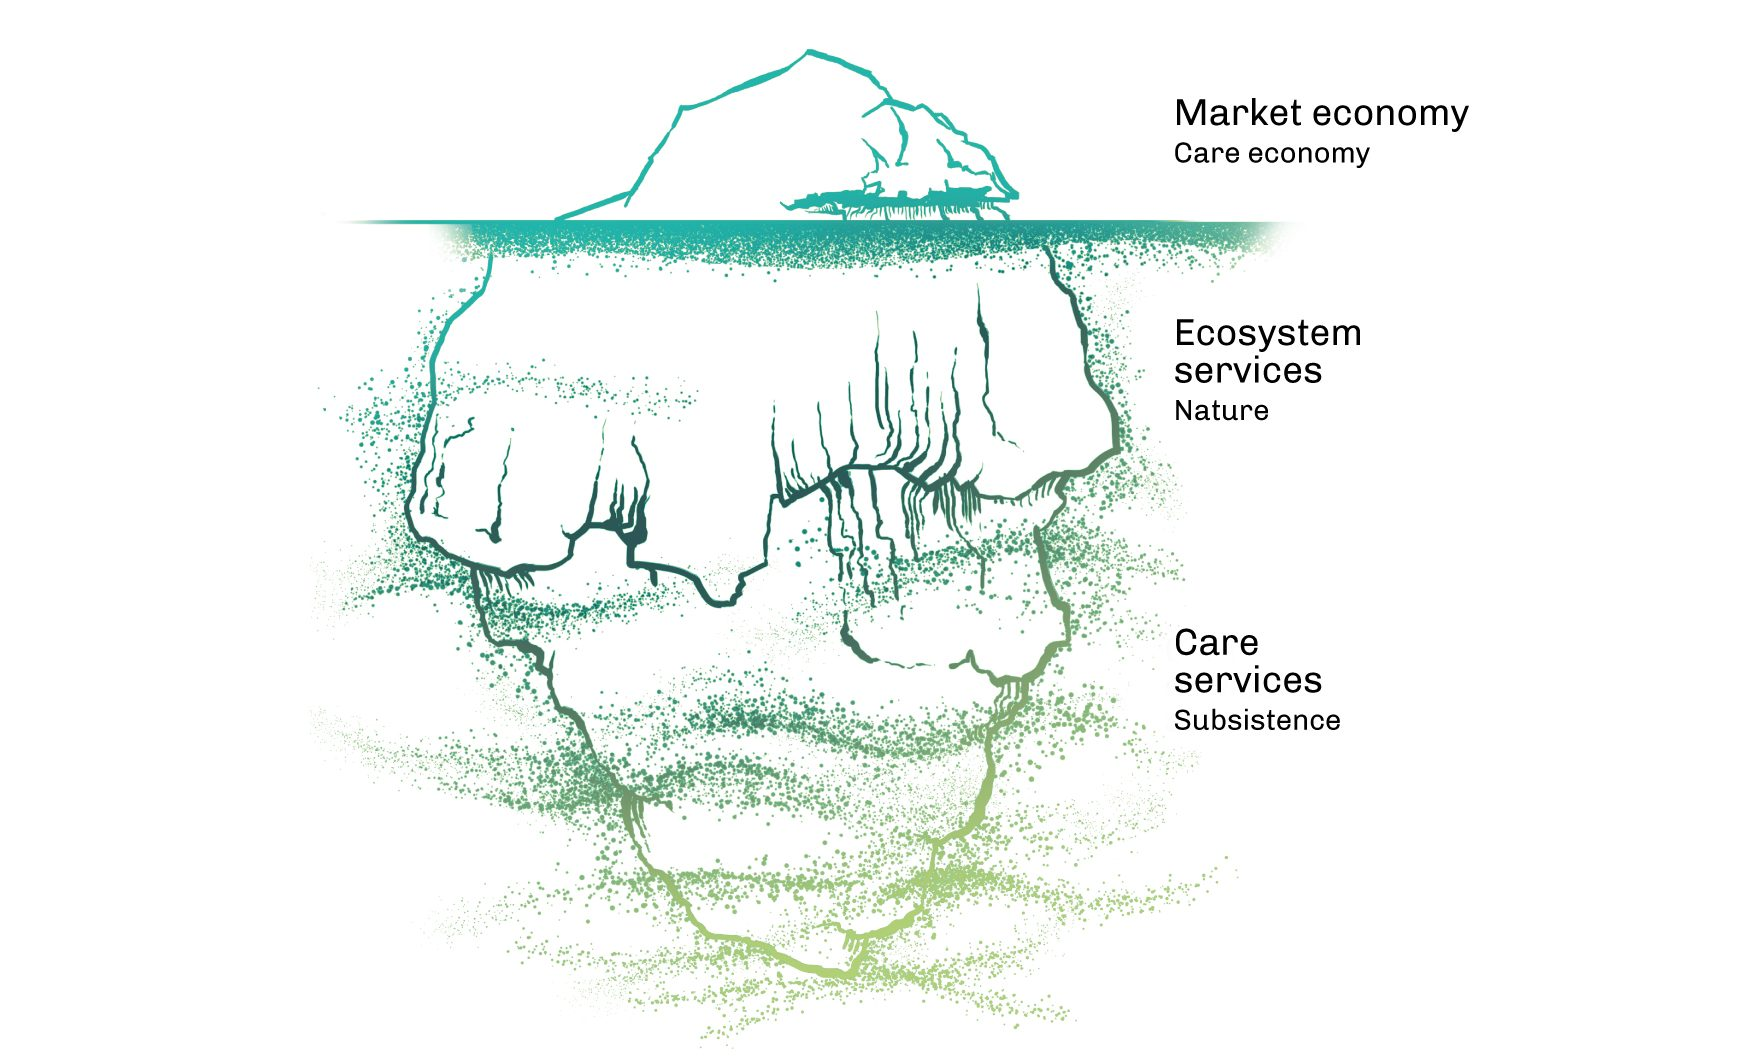 Iceberg with market economy